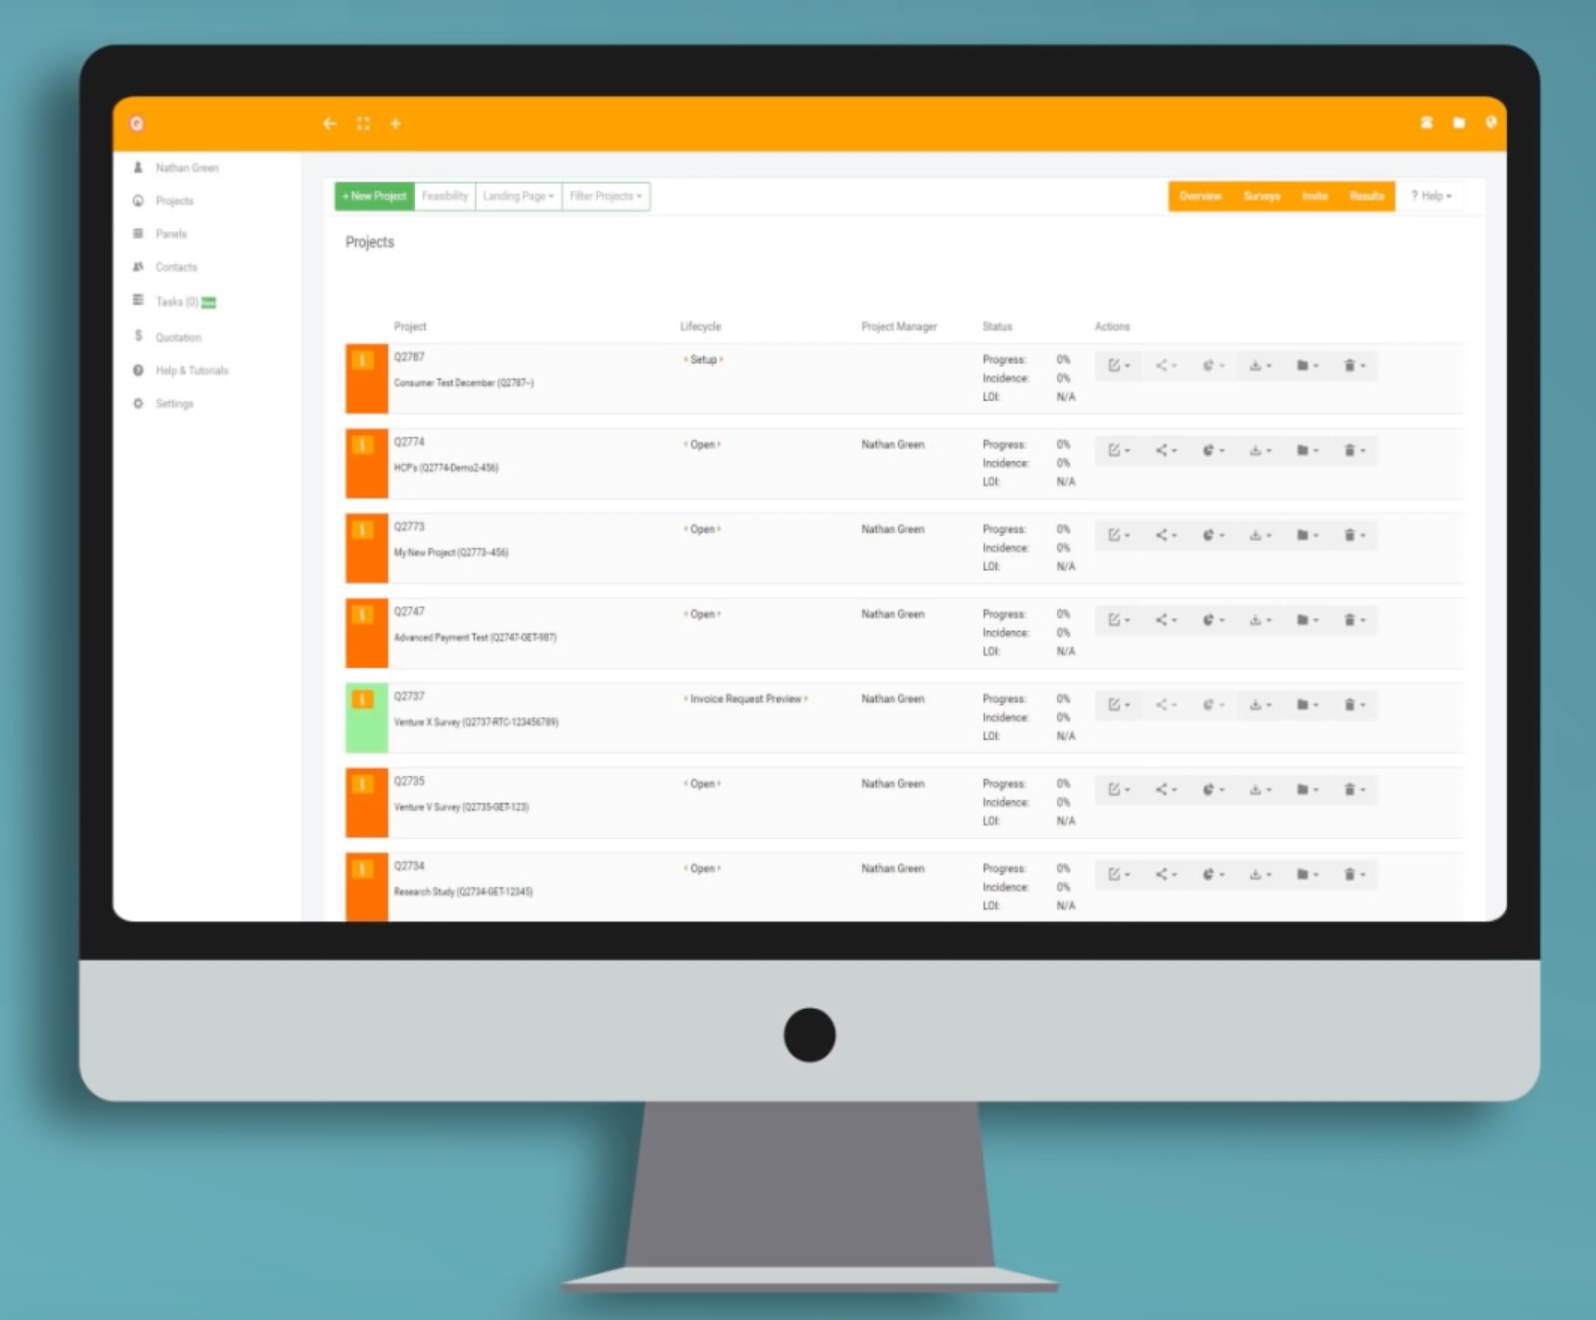 The project overview screen displays all projects in their various lifecycle stages